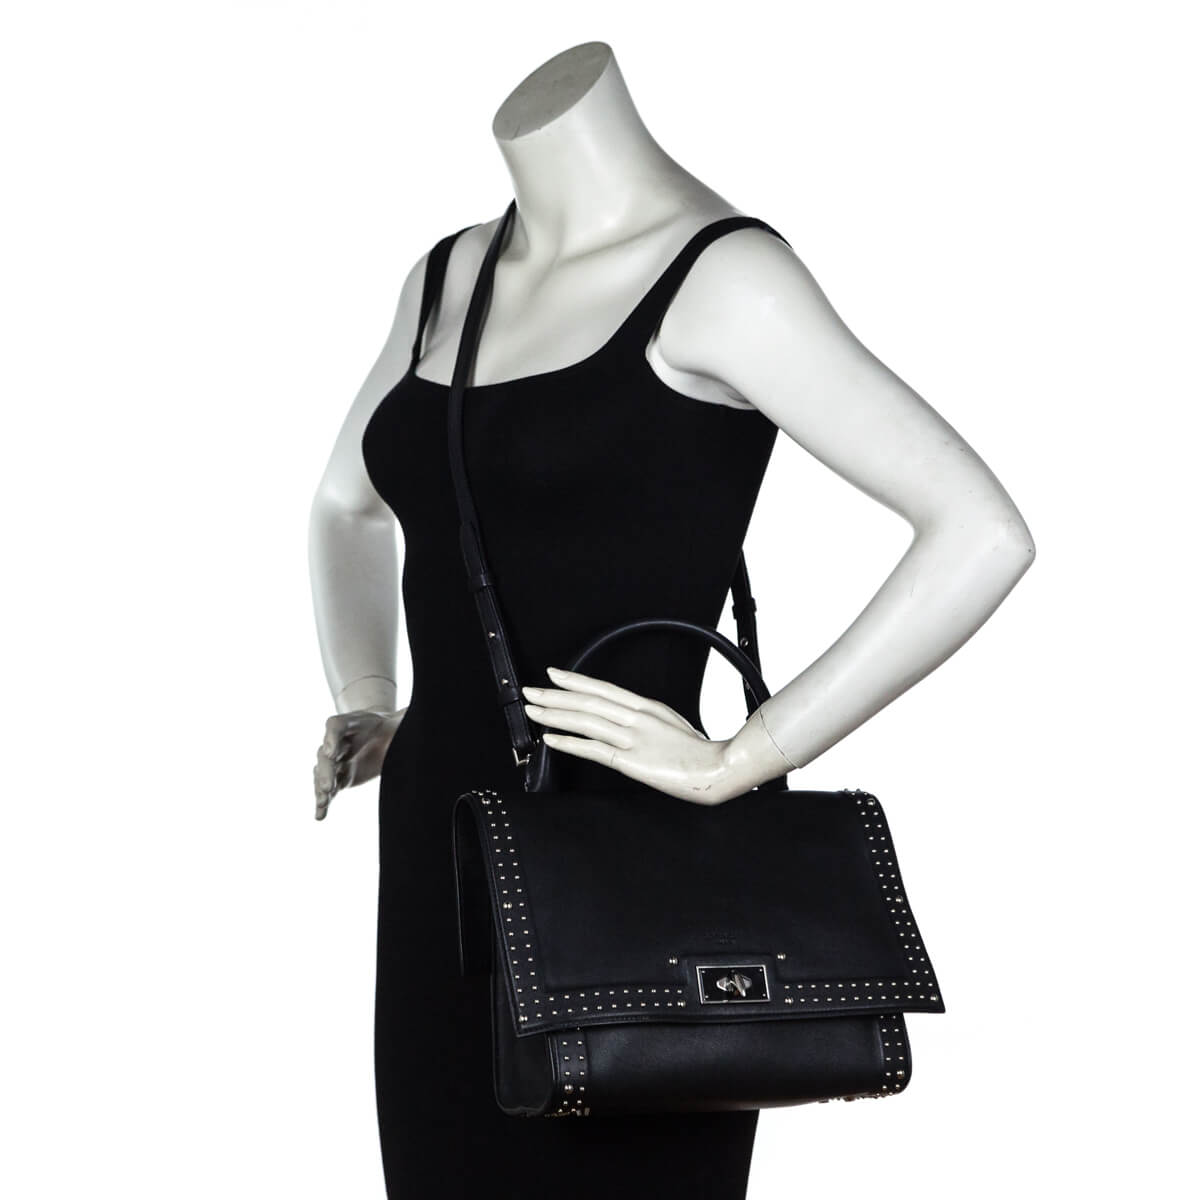 9cb170676e ... Givenchy Black Calfskin Small Stud Couture Shark Tooth Satchel - LOVE  that BAG - Preowned Authentic